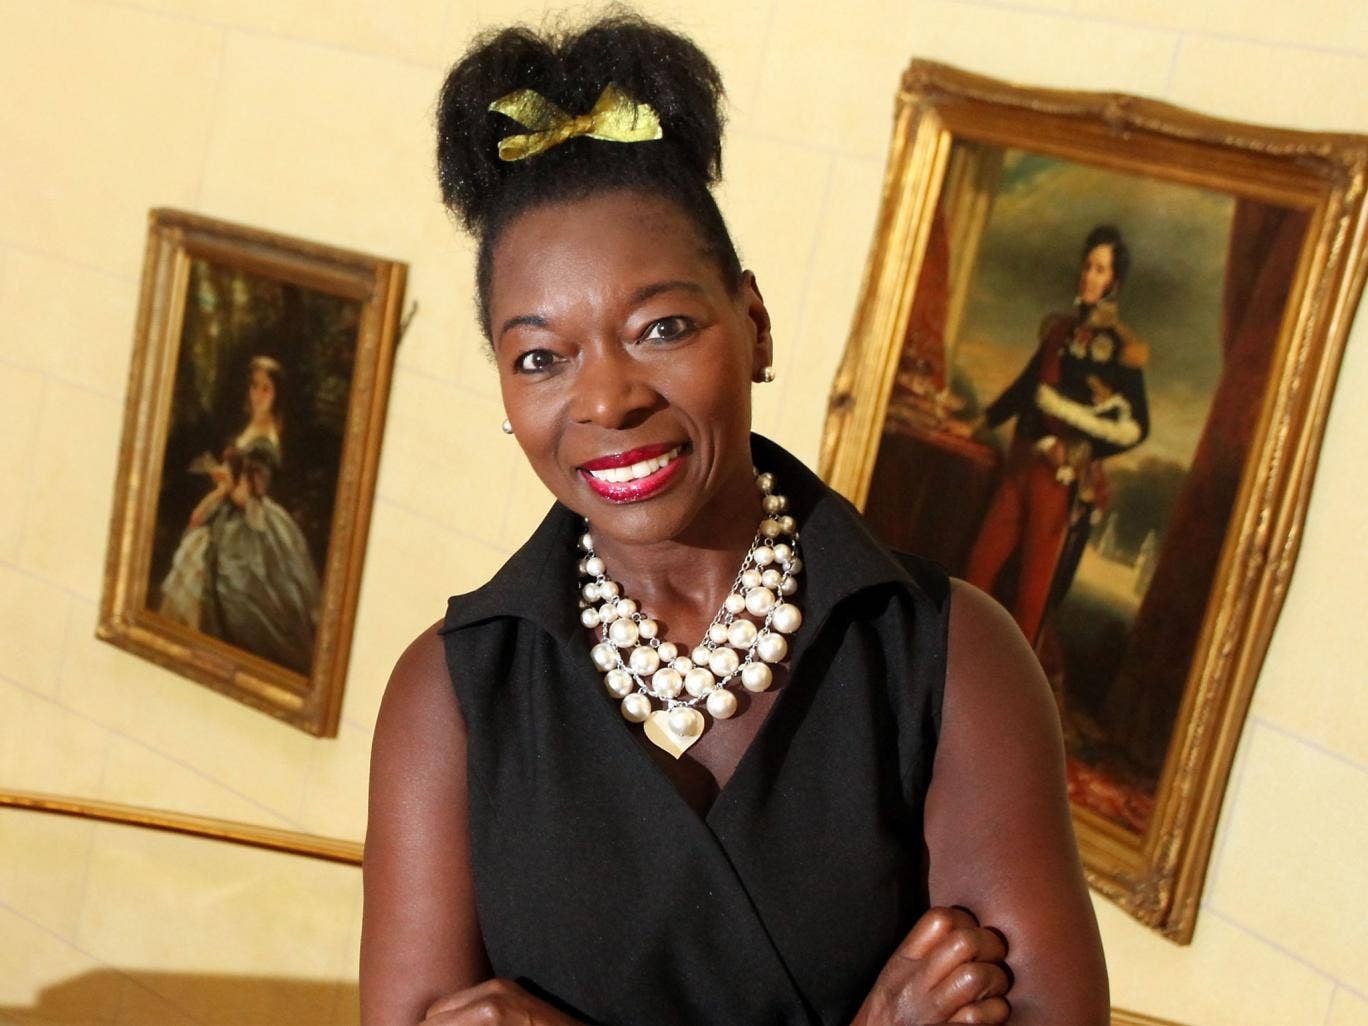 Baroness Benjamin: 'Being visibly different to family members may result in a sense of not belonging or not feeling able to identify with their family'